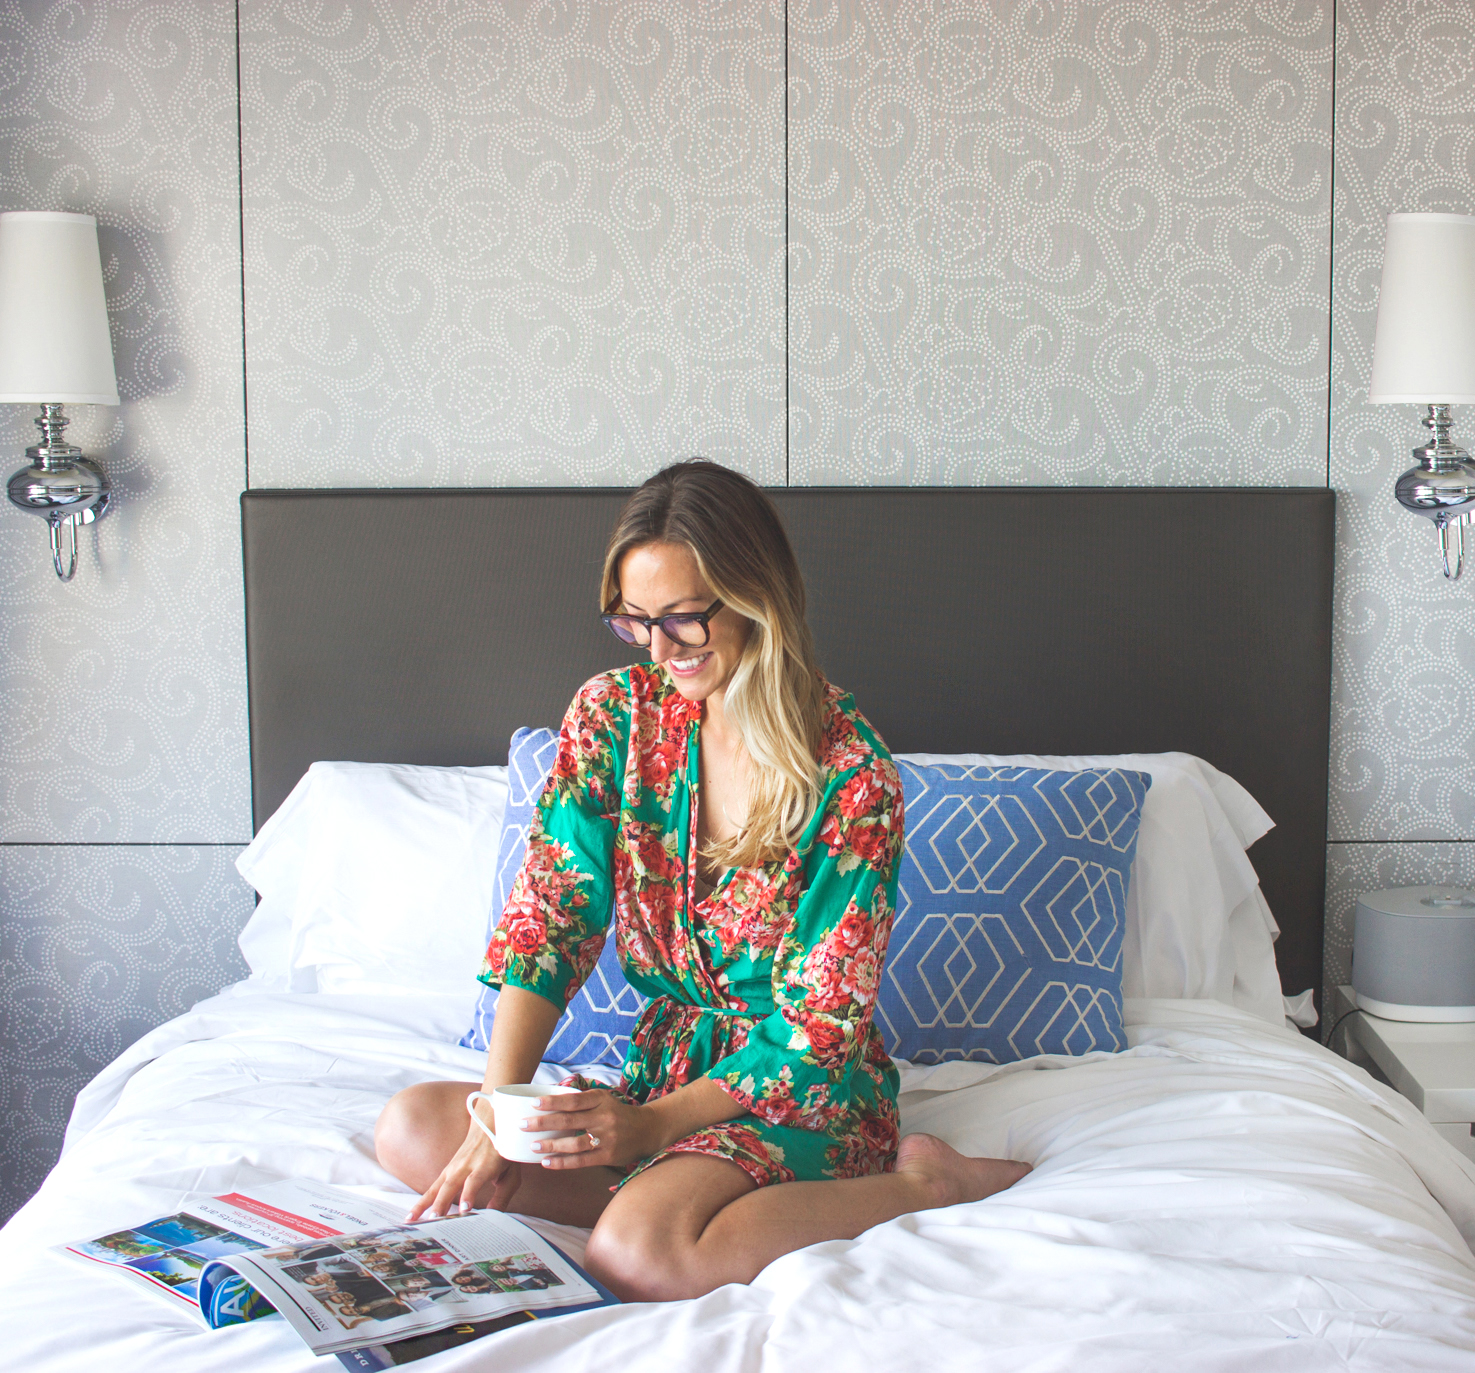 livvyland-blog-olivia-watson-vandi-fair-w-hotel-atx-staycation-stay-cation-austin-texas-fashion-travel-blogger-hotel-reviwe-wet-deck-pool-party-room-coffee-in-bed-1